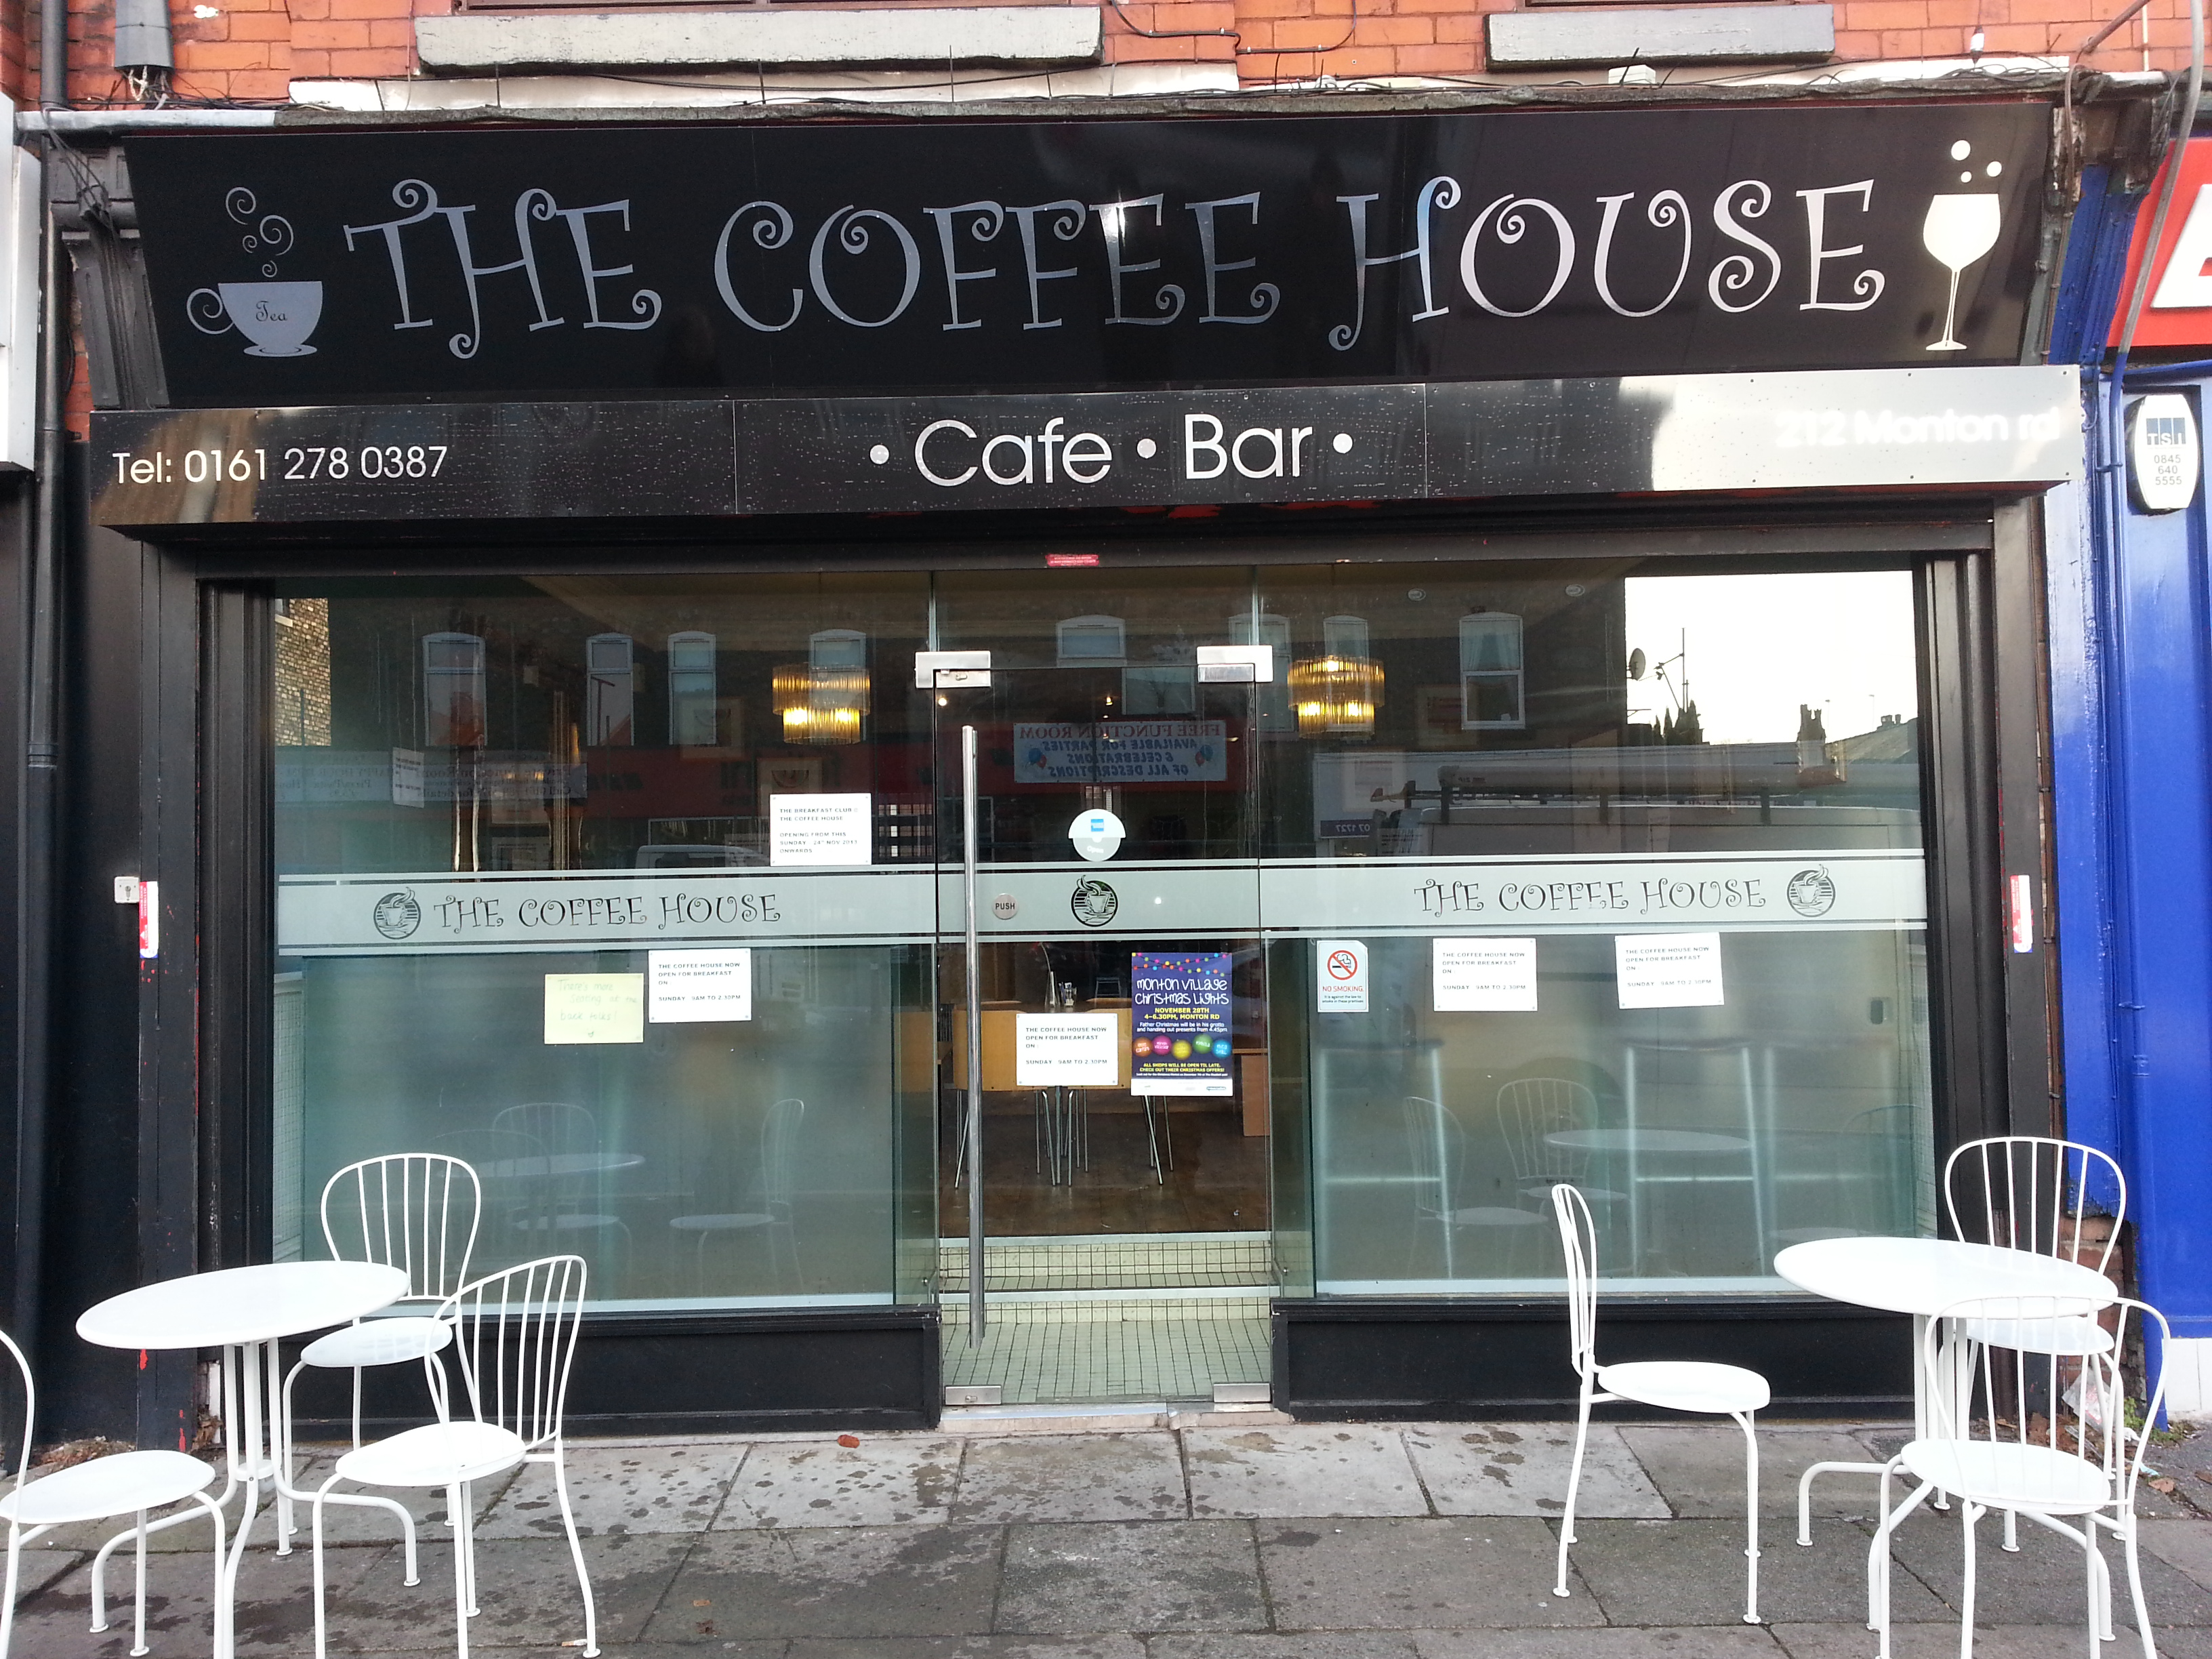 Monton Coffee House Signage shop sign manchester